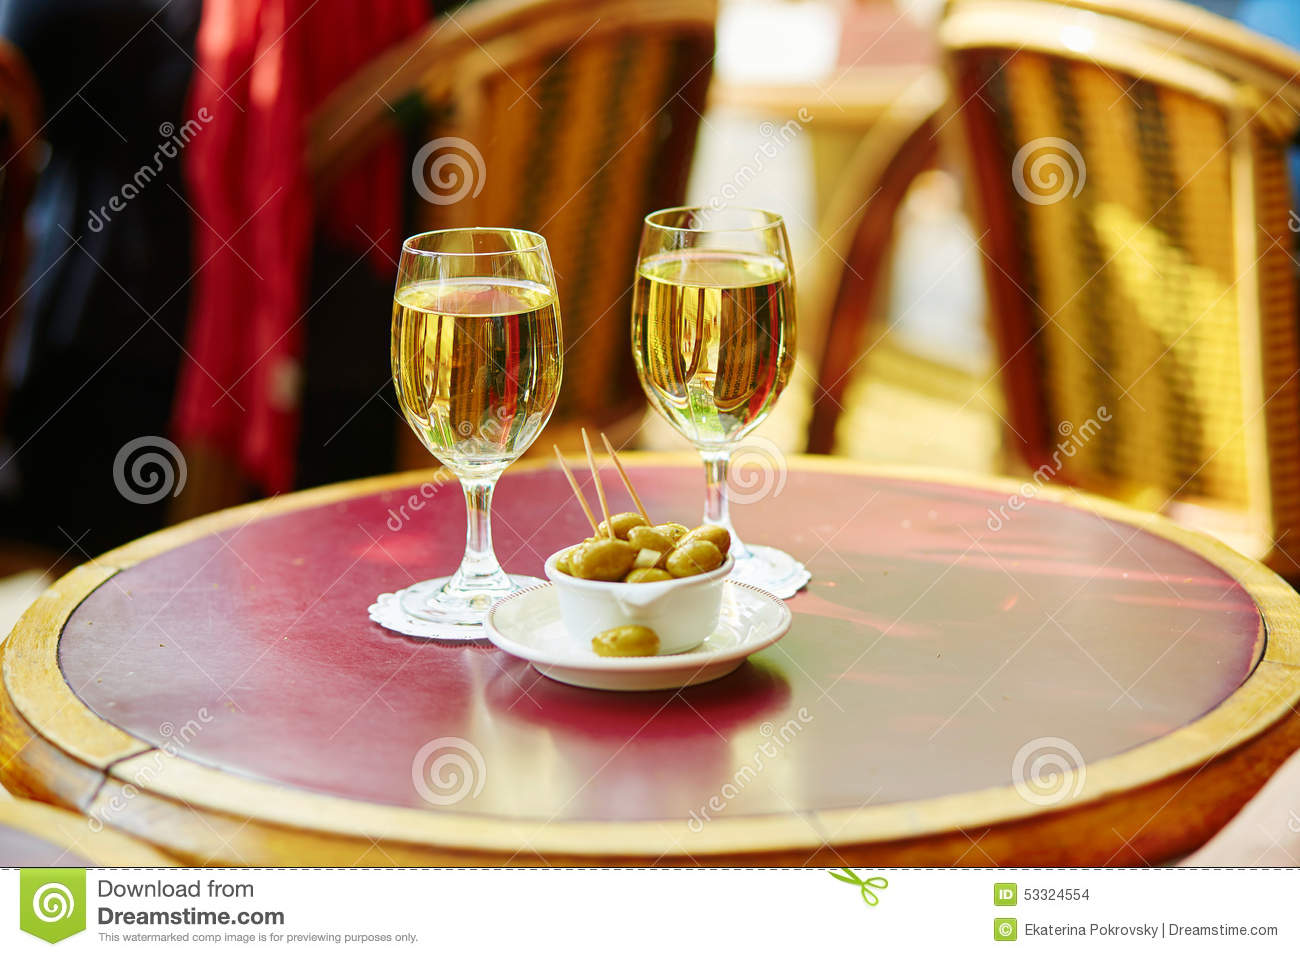 Two glasses of white wine and olives